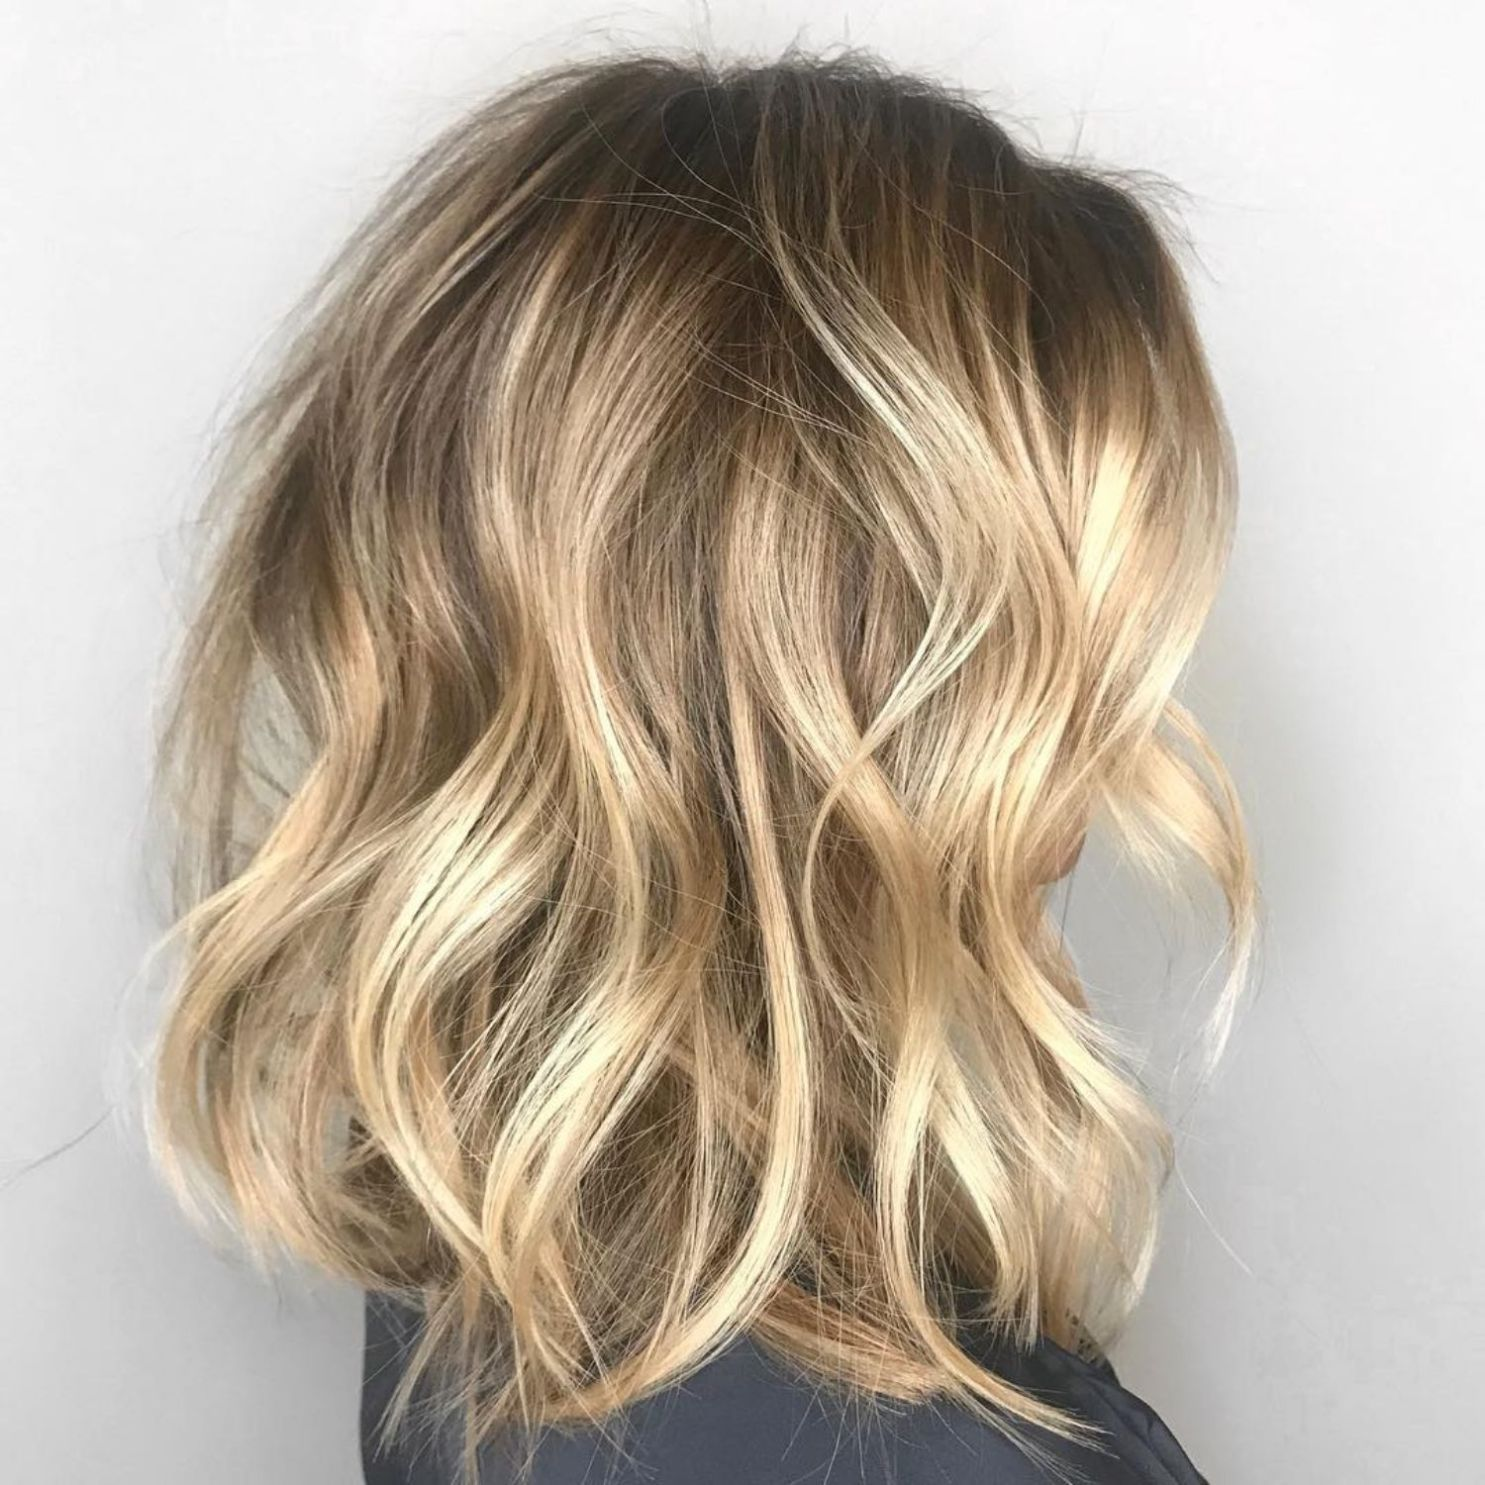 50 Gorgeous Wavy Bob Hairstyles With An Extra Touch Of Femininity Wavy Bob Hairstyles Wavy Lob Haircut Blonde Lob Hair